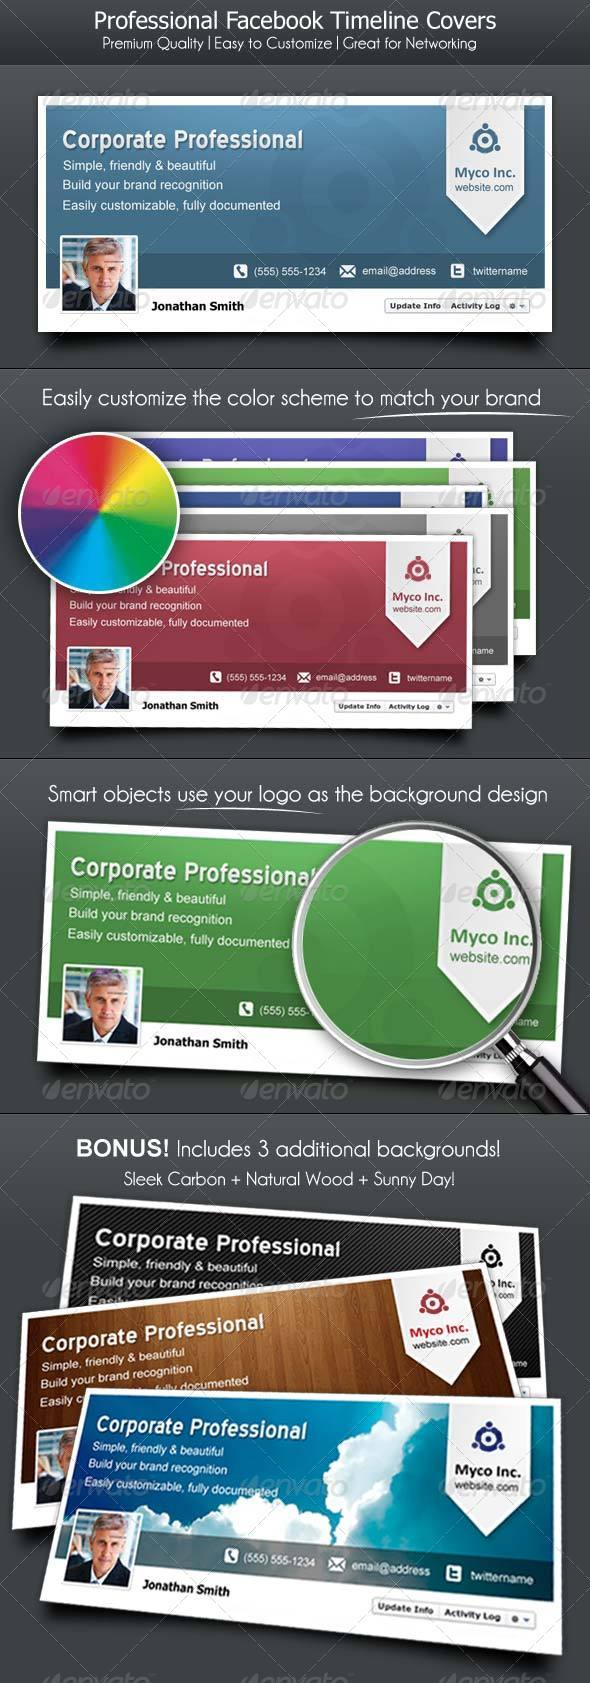 GraphicRiver Facebook Timeline Cover for Corporate Professional 1871016